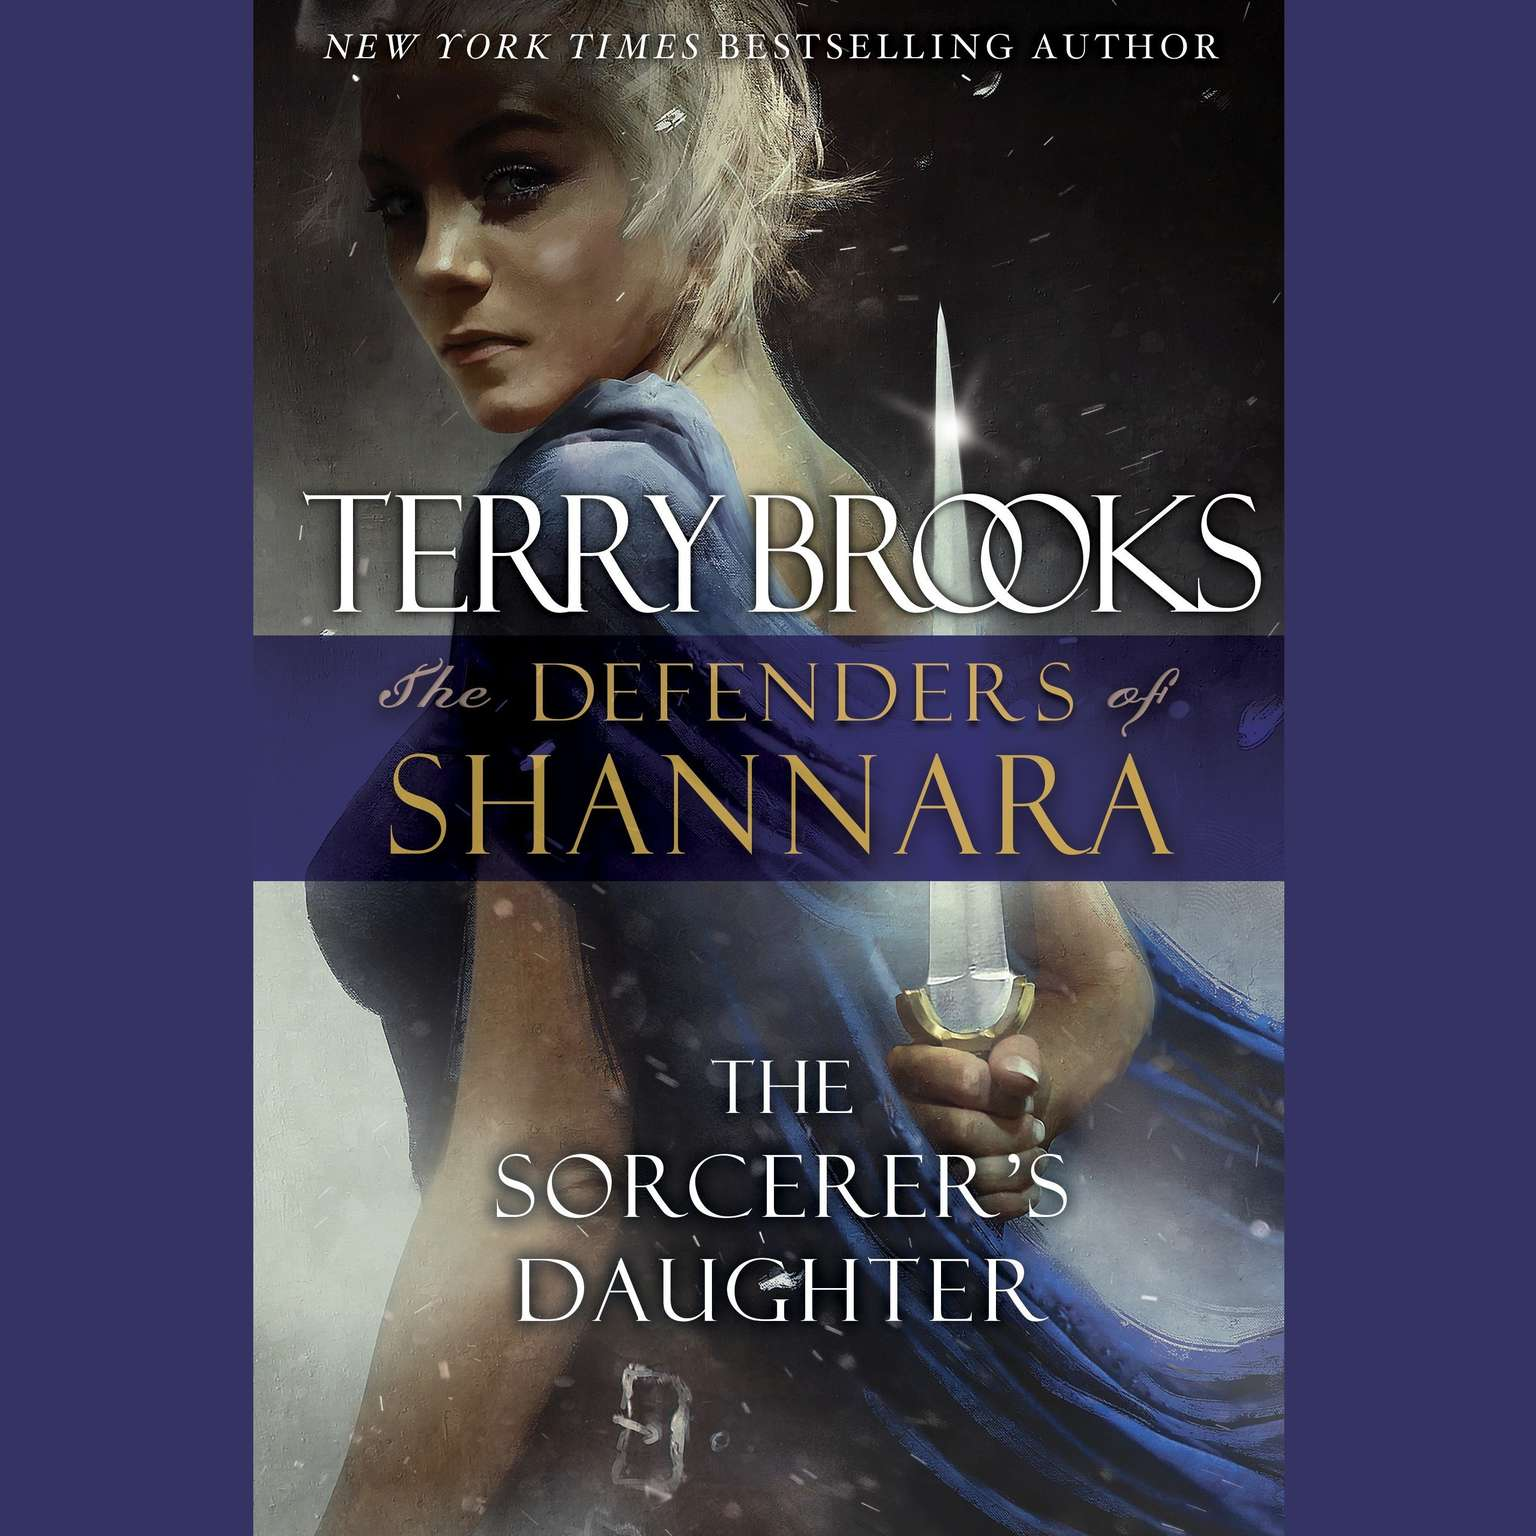 Printable The Sorcerer's Daughter: The Defenders of Shannara Audiobook Cover Art